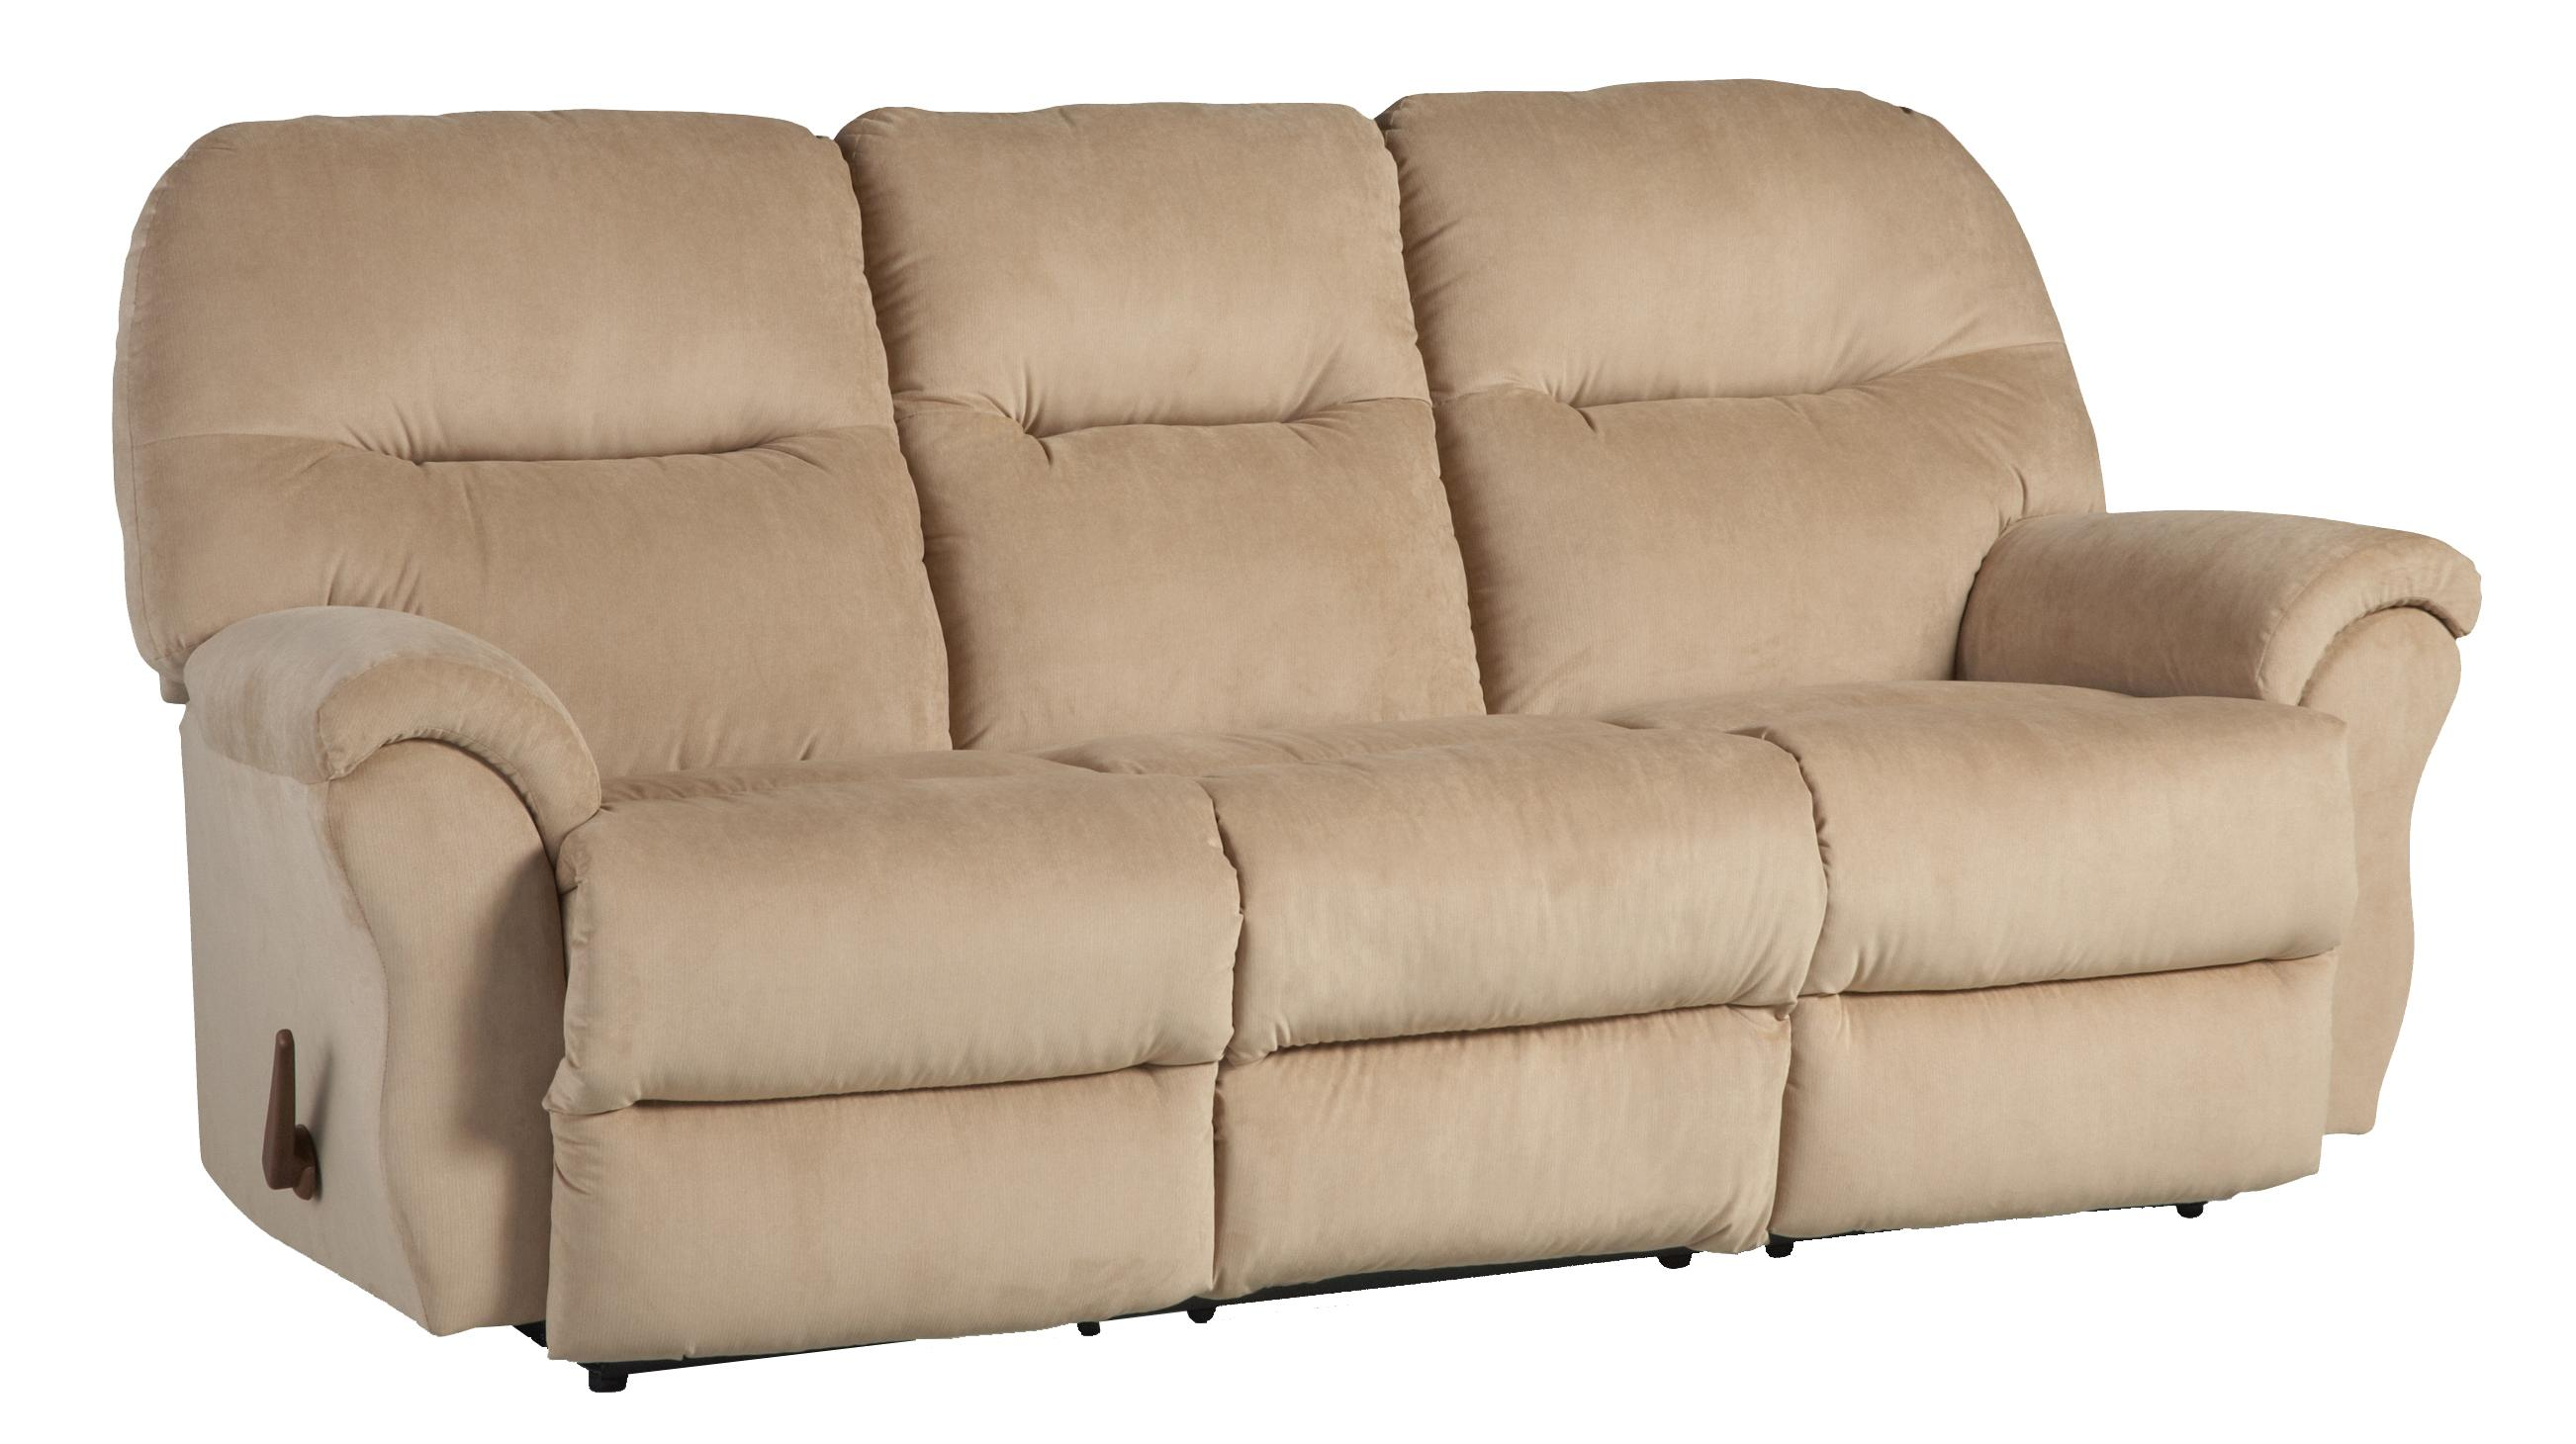 Bodie Power Reclining Sofa by Best Home Furnishings at Simply Home by Lindy's